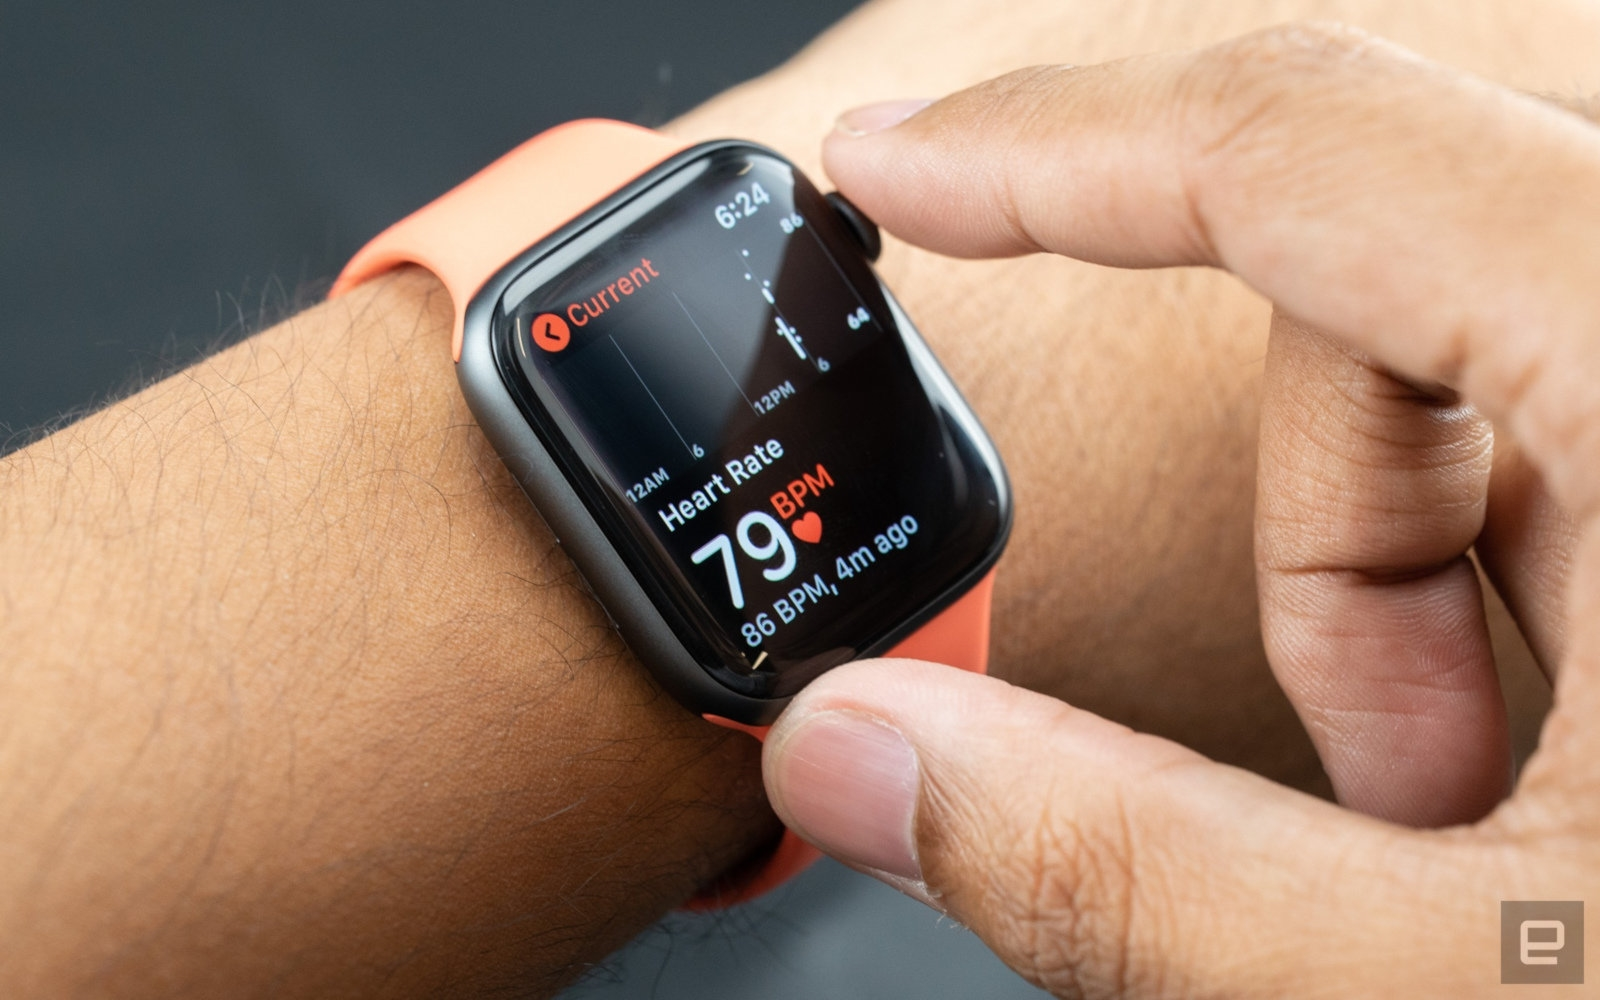 Stanford outlines its massive Apple Watch heart rate study | DeviceDaily.com